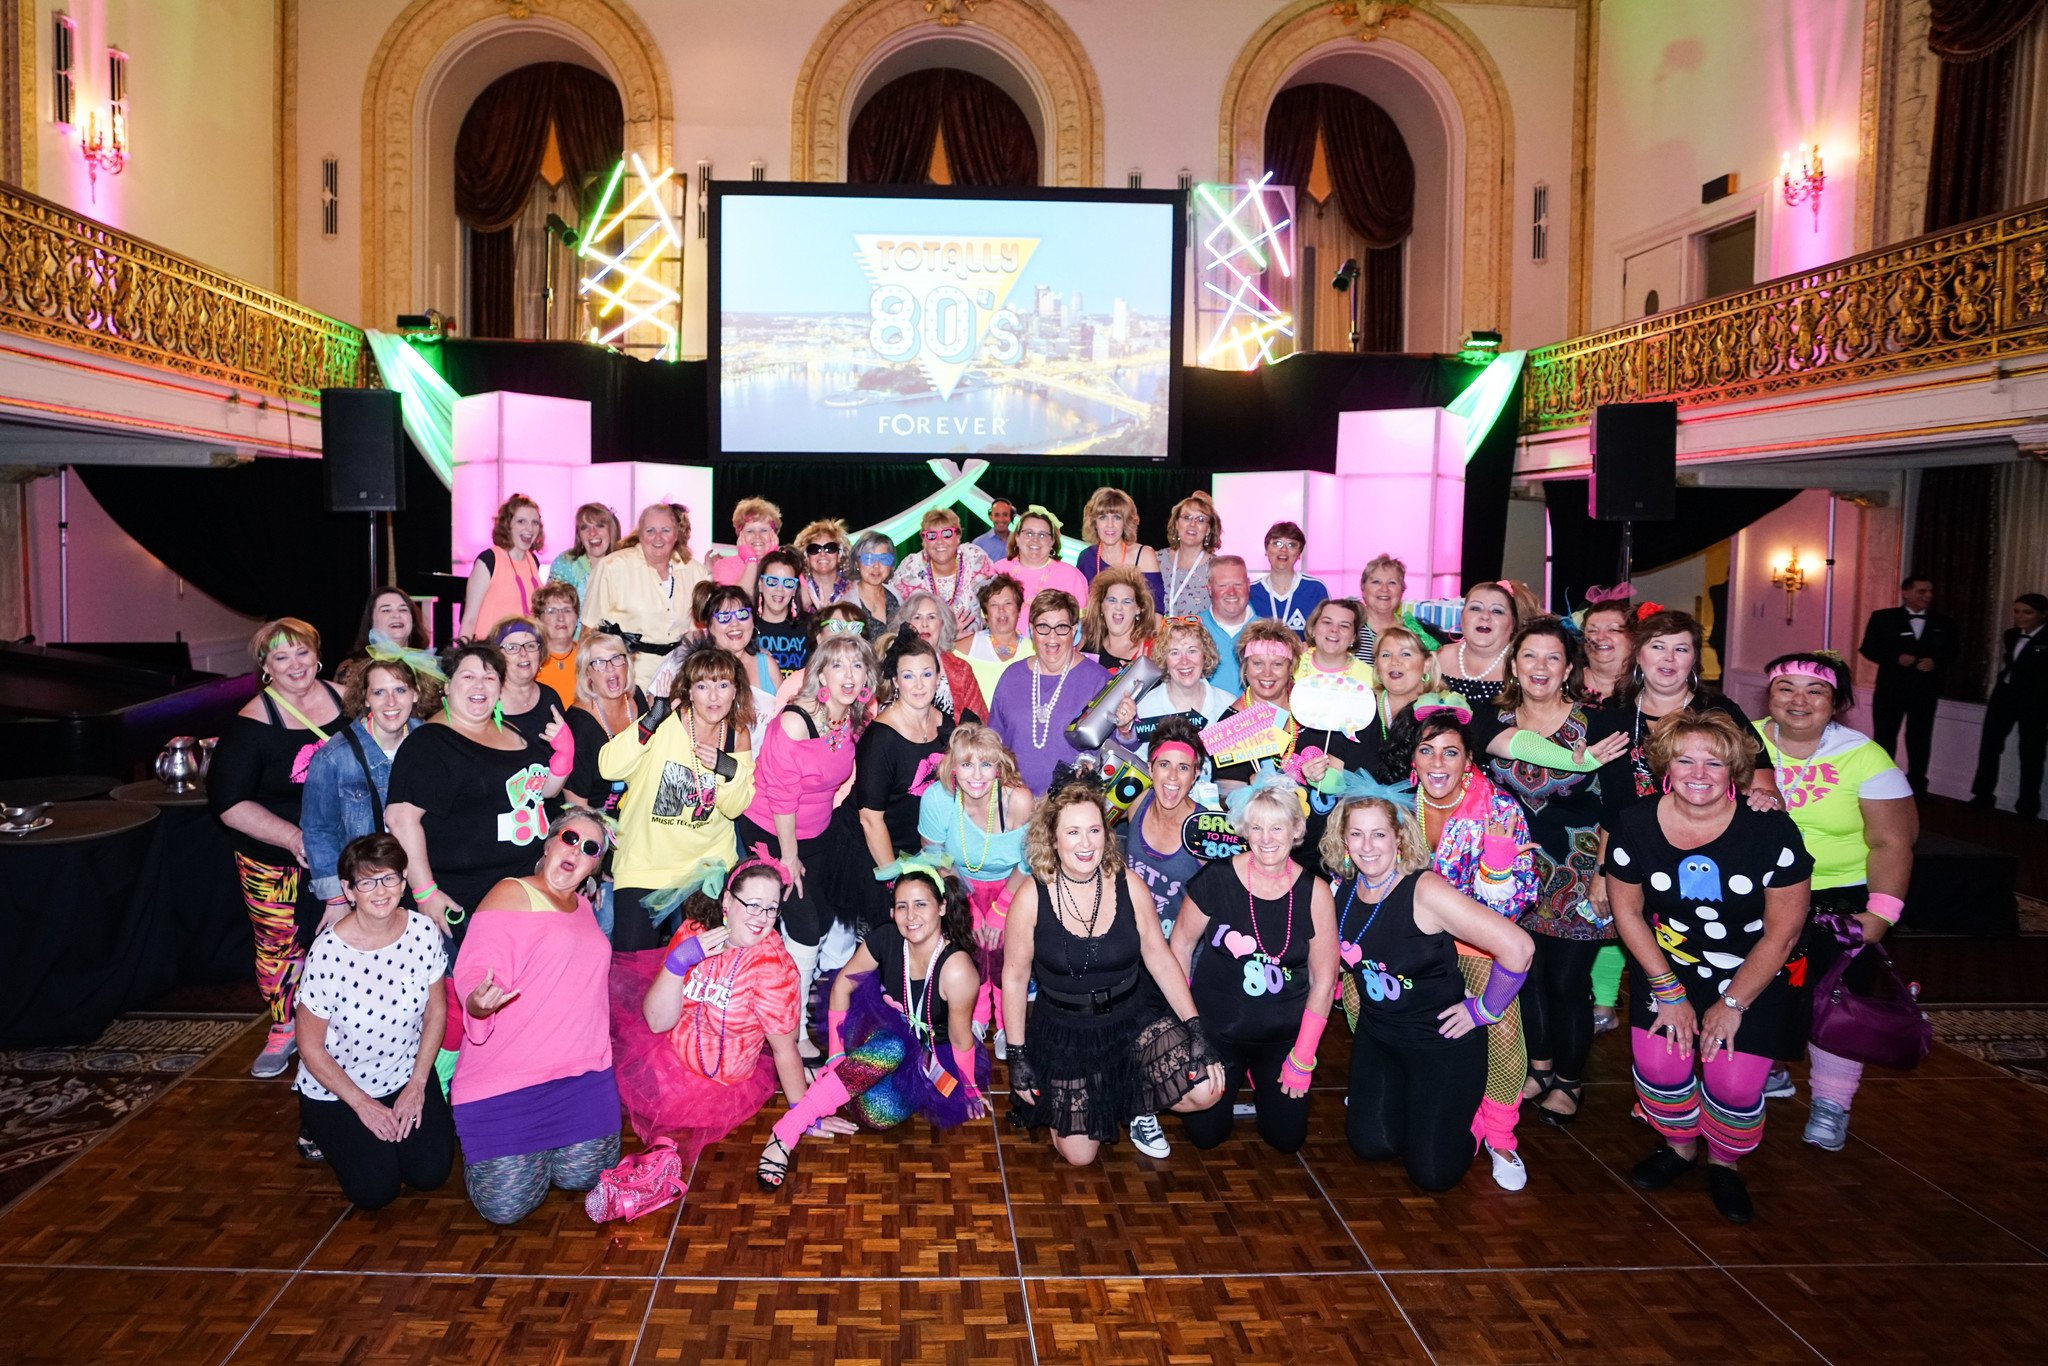 Several members of Team Empower at the FOREVER Live! 2018 Convention in Pittsburgh, PA. They had a great time with the 80s theme!